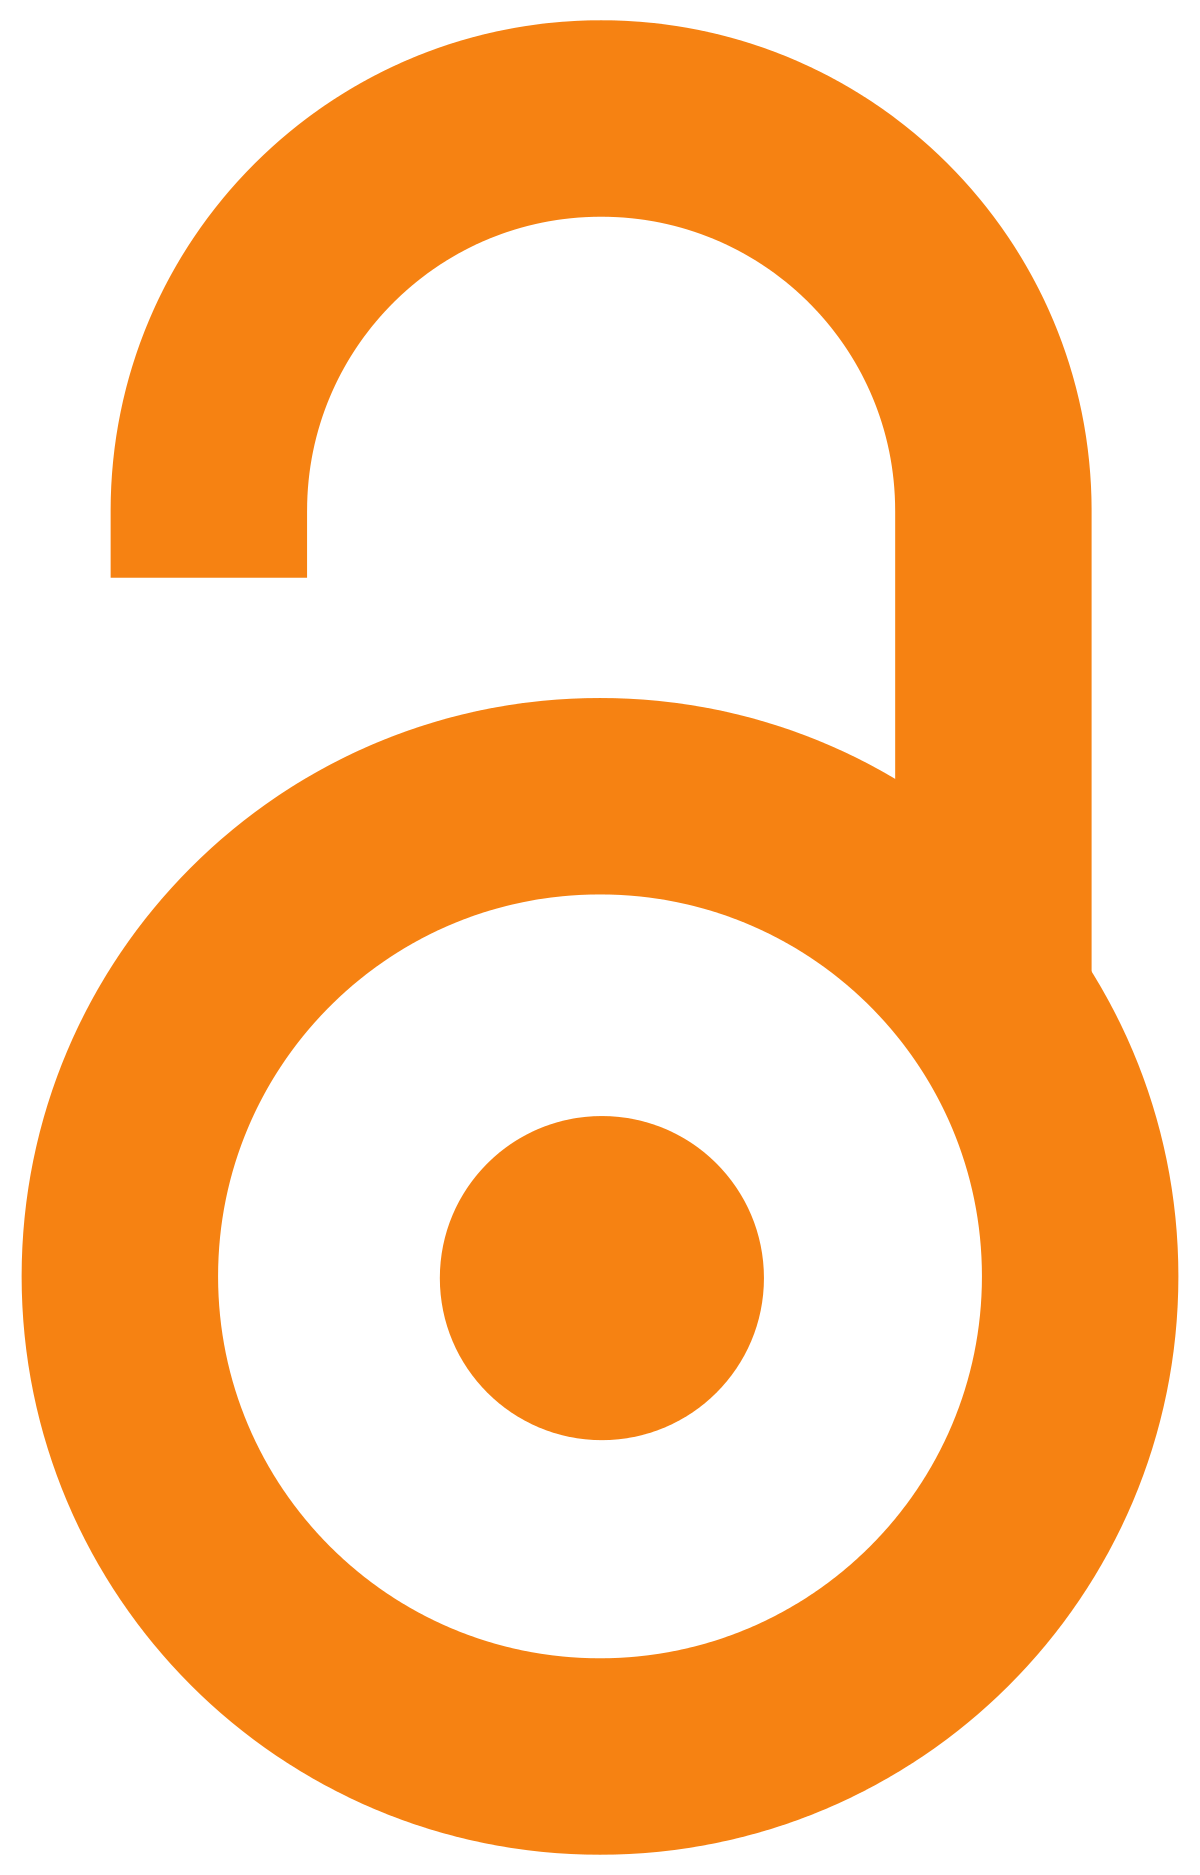 The open access logo shows an orange padlock which is unlocked